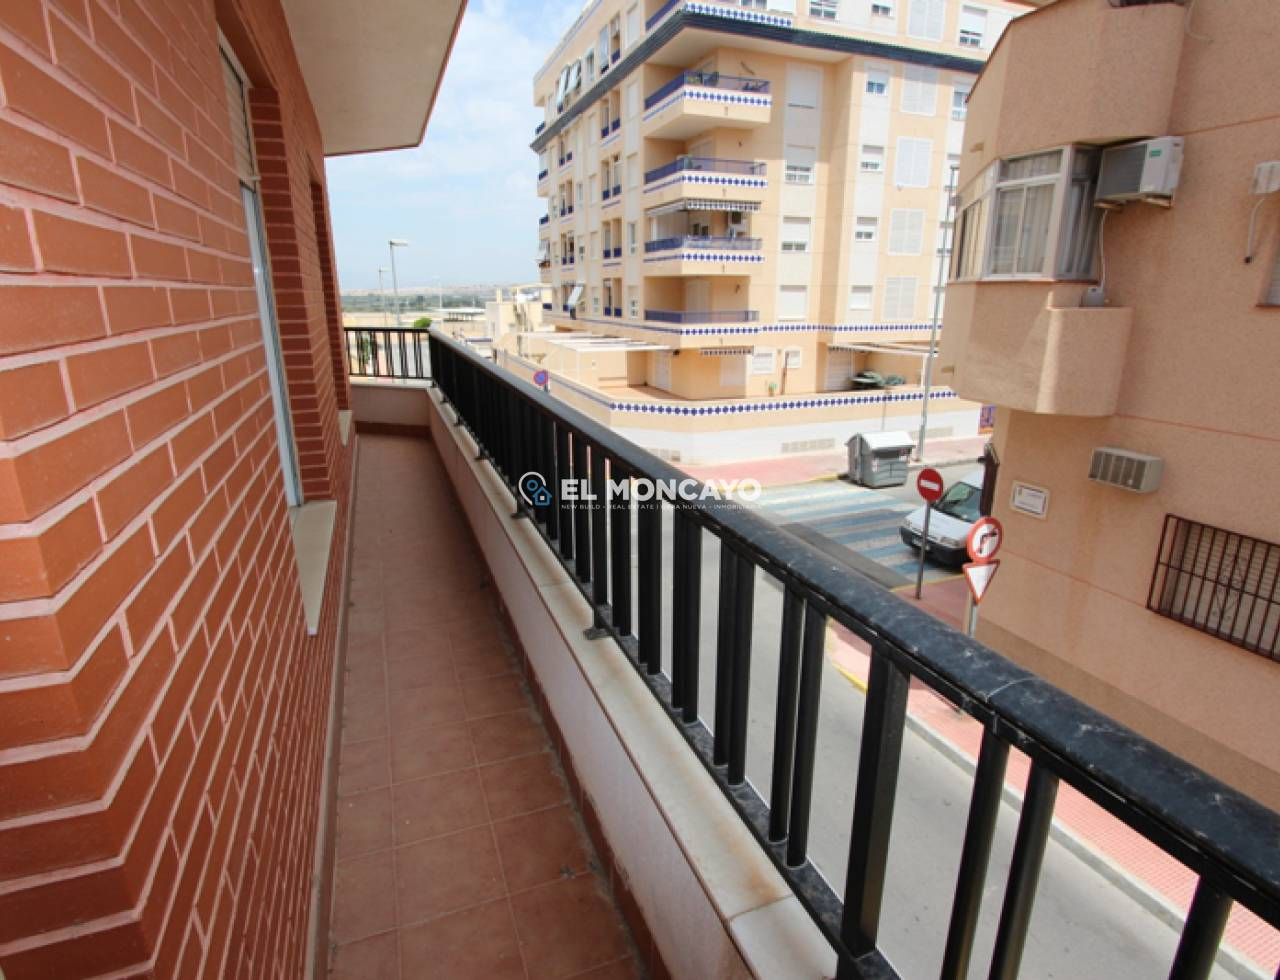 Apartment 3 bedrooms new construction in Guardamar del Segura (Costa Blanca) (3)